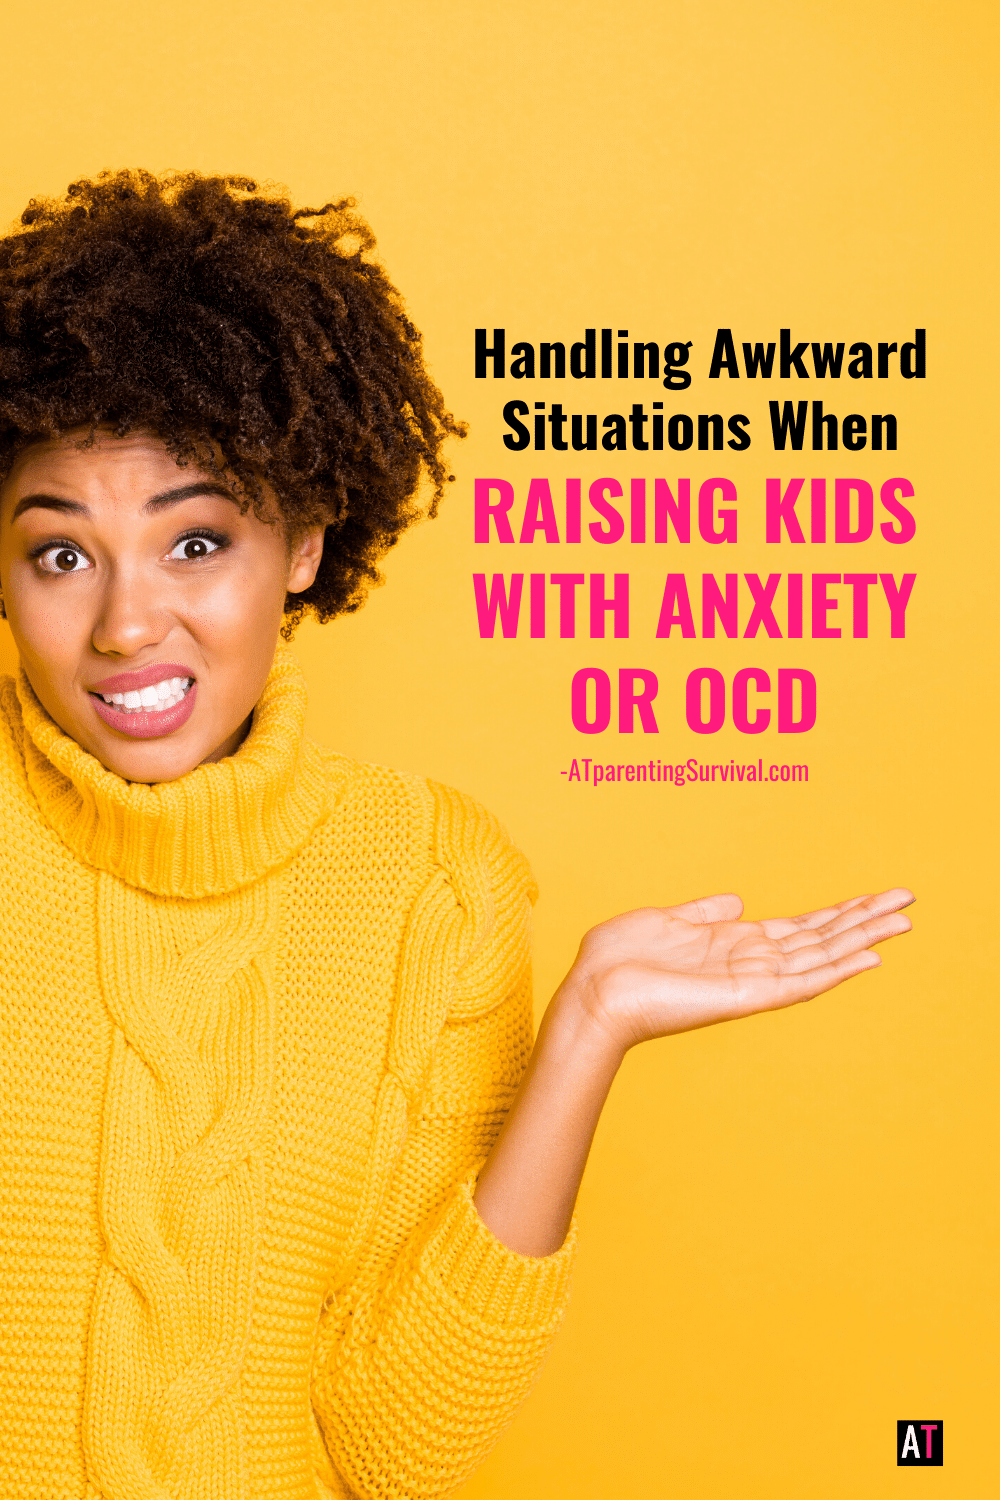 PSP 160: Handling Awkward Situations when Raising Kids with Anxiety or OCD with Evie & Sarah